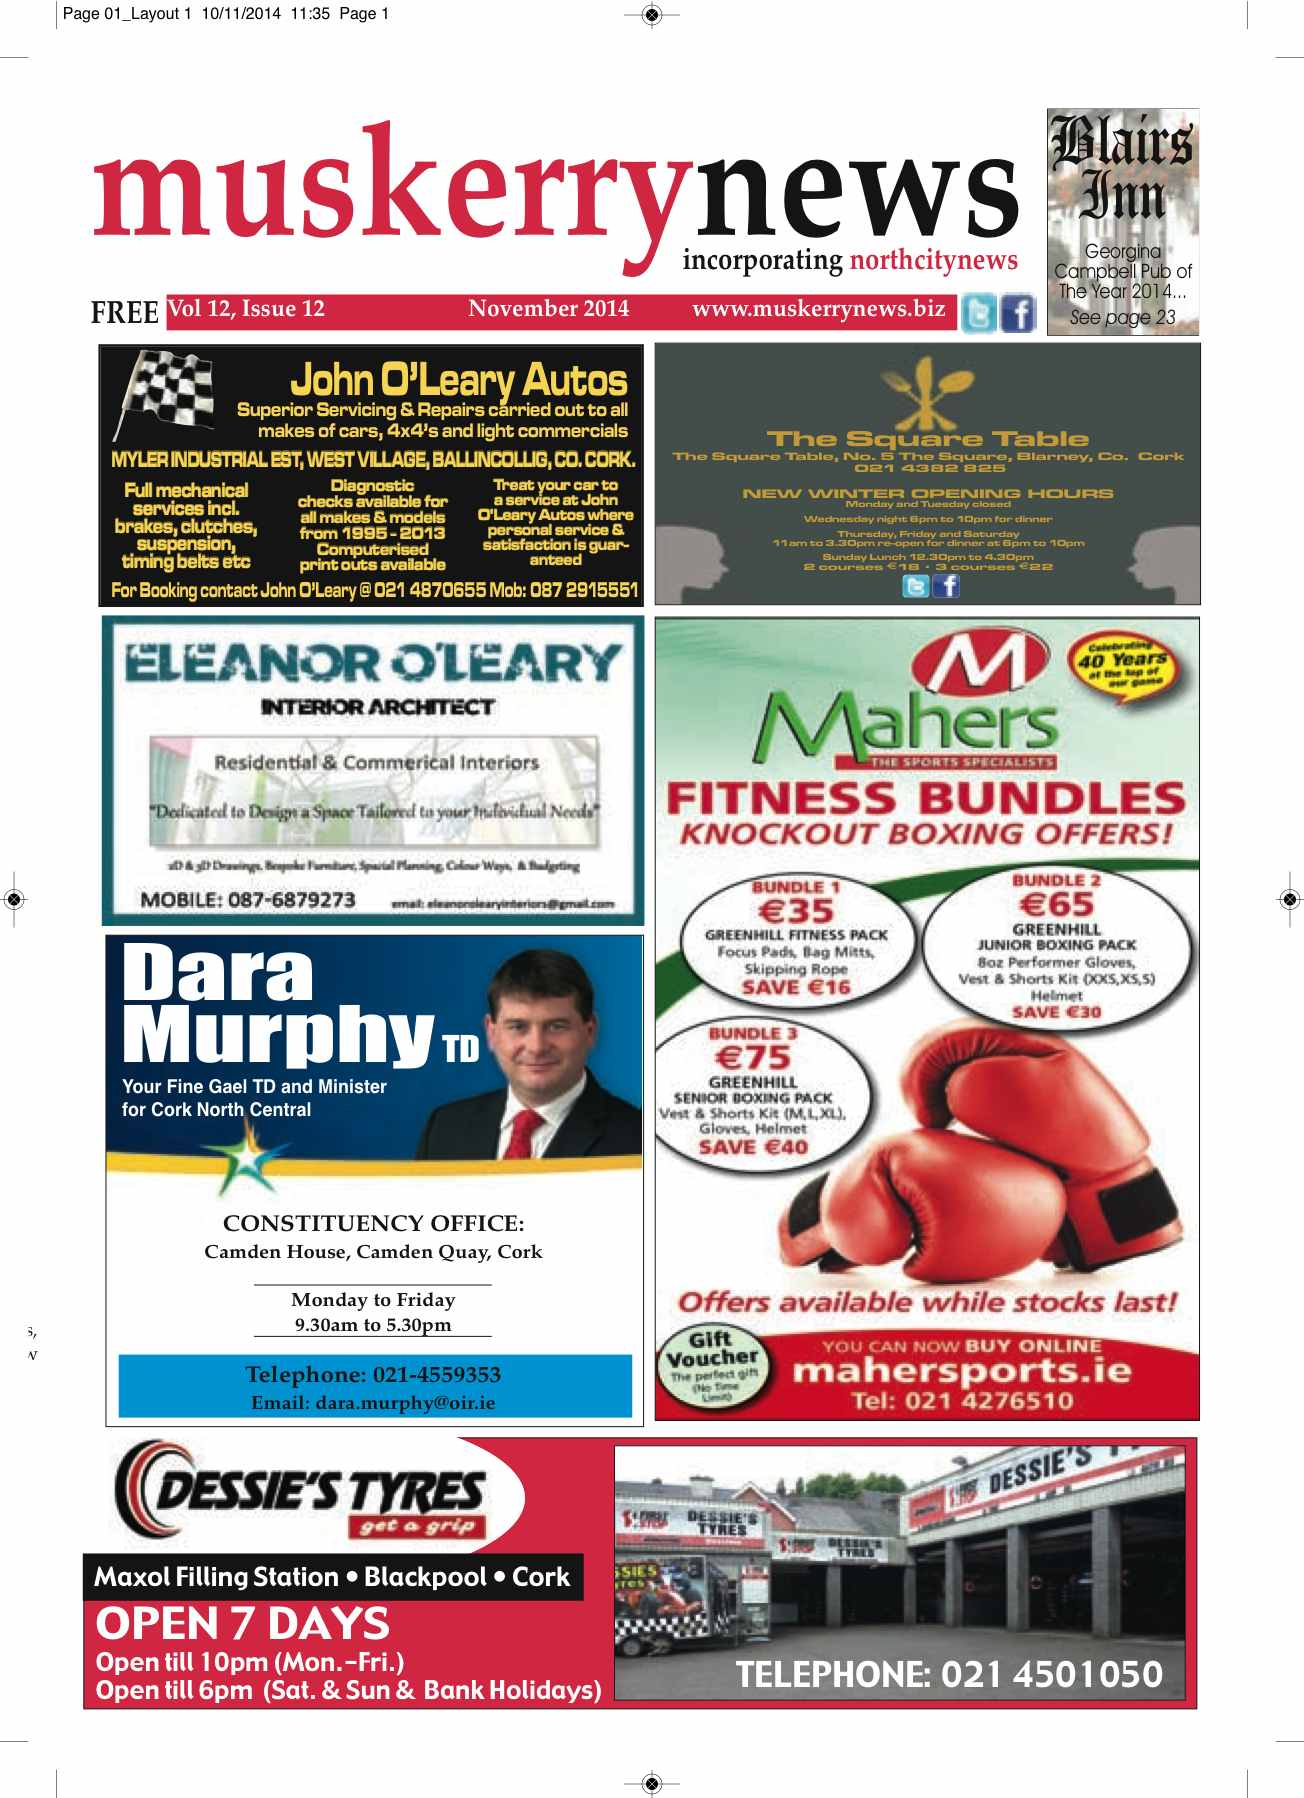 Muskerry News November 2014_WEB-2